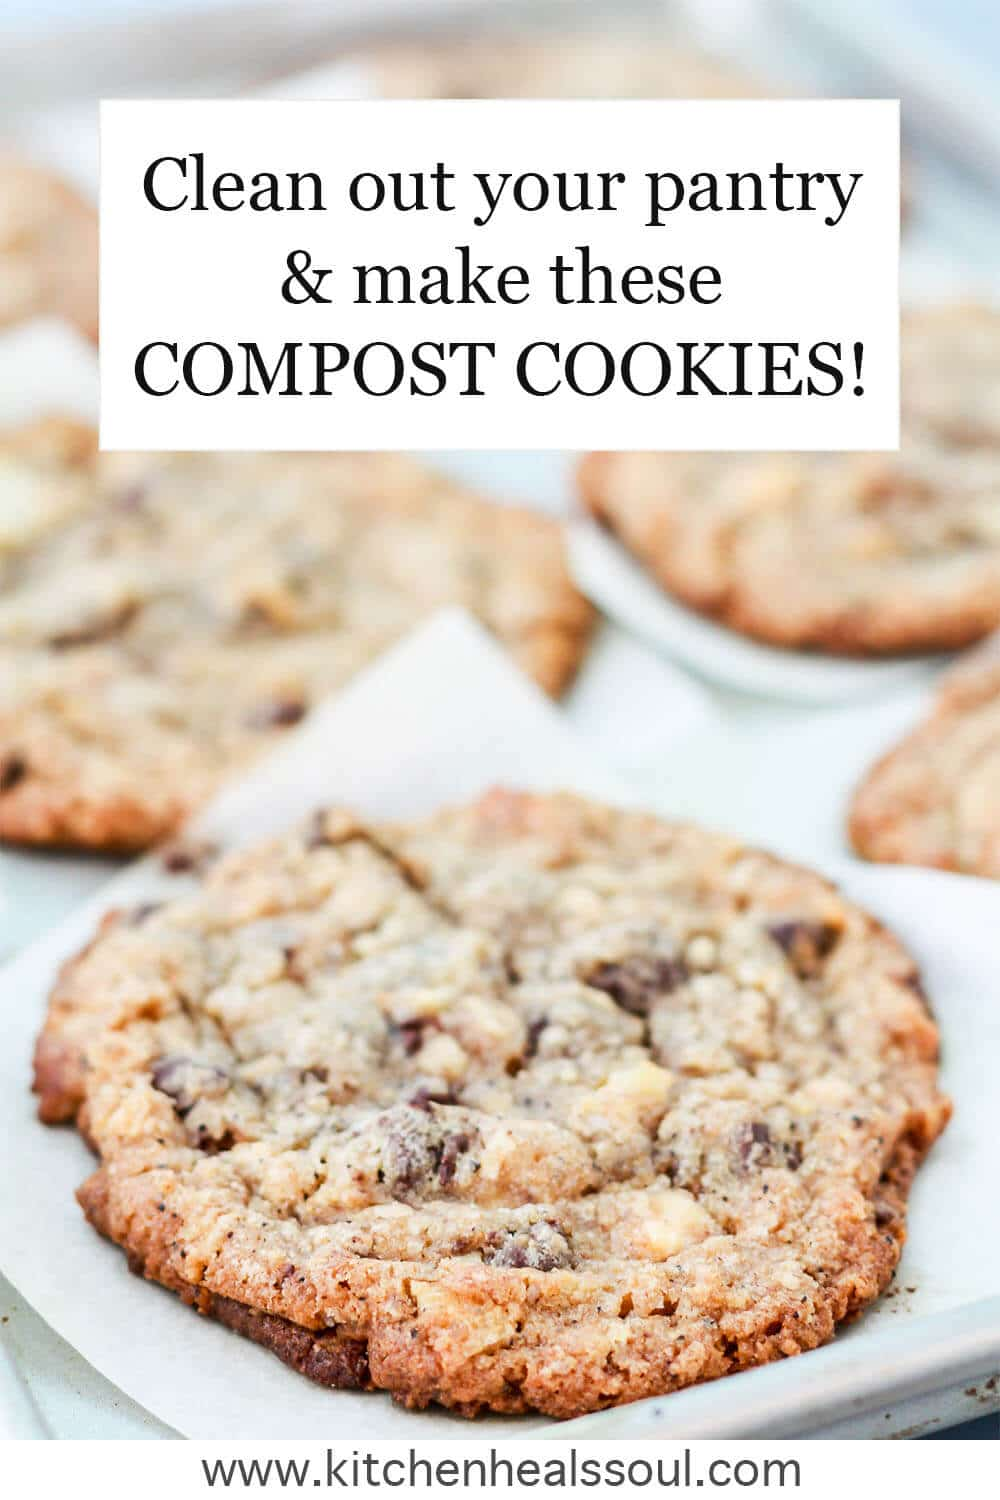 Compost cookies (also called kitchen sink cookies) baked on parchment lined baking sheet